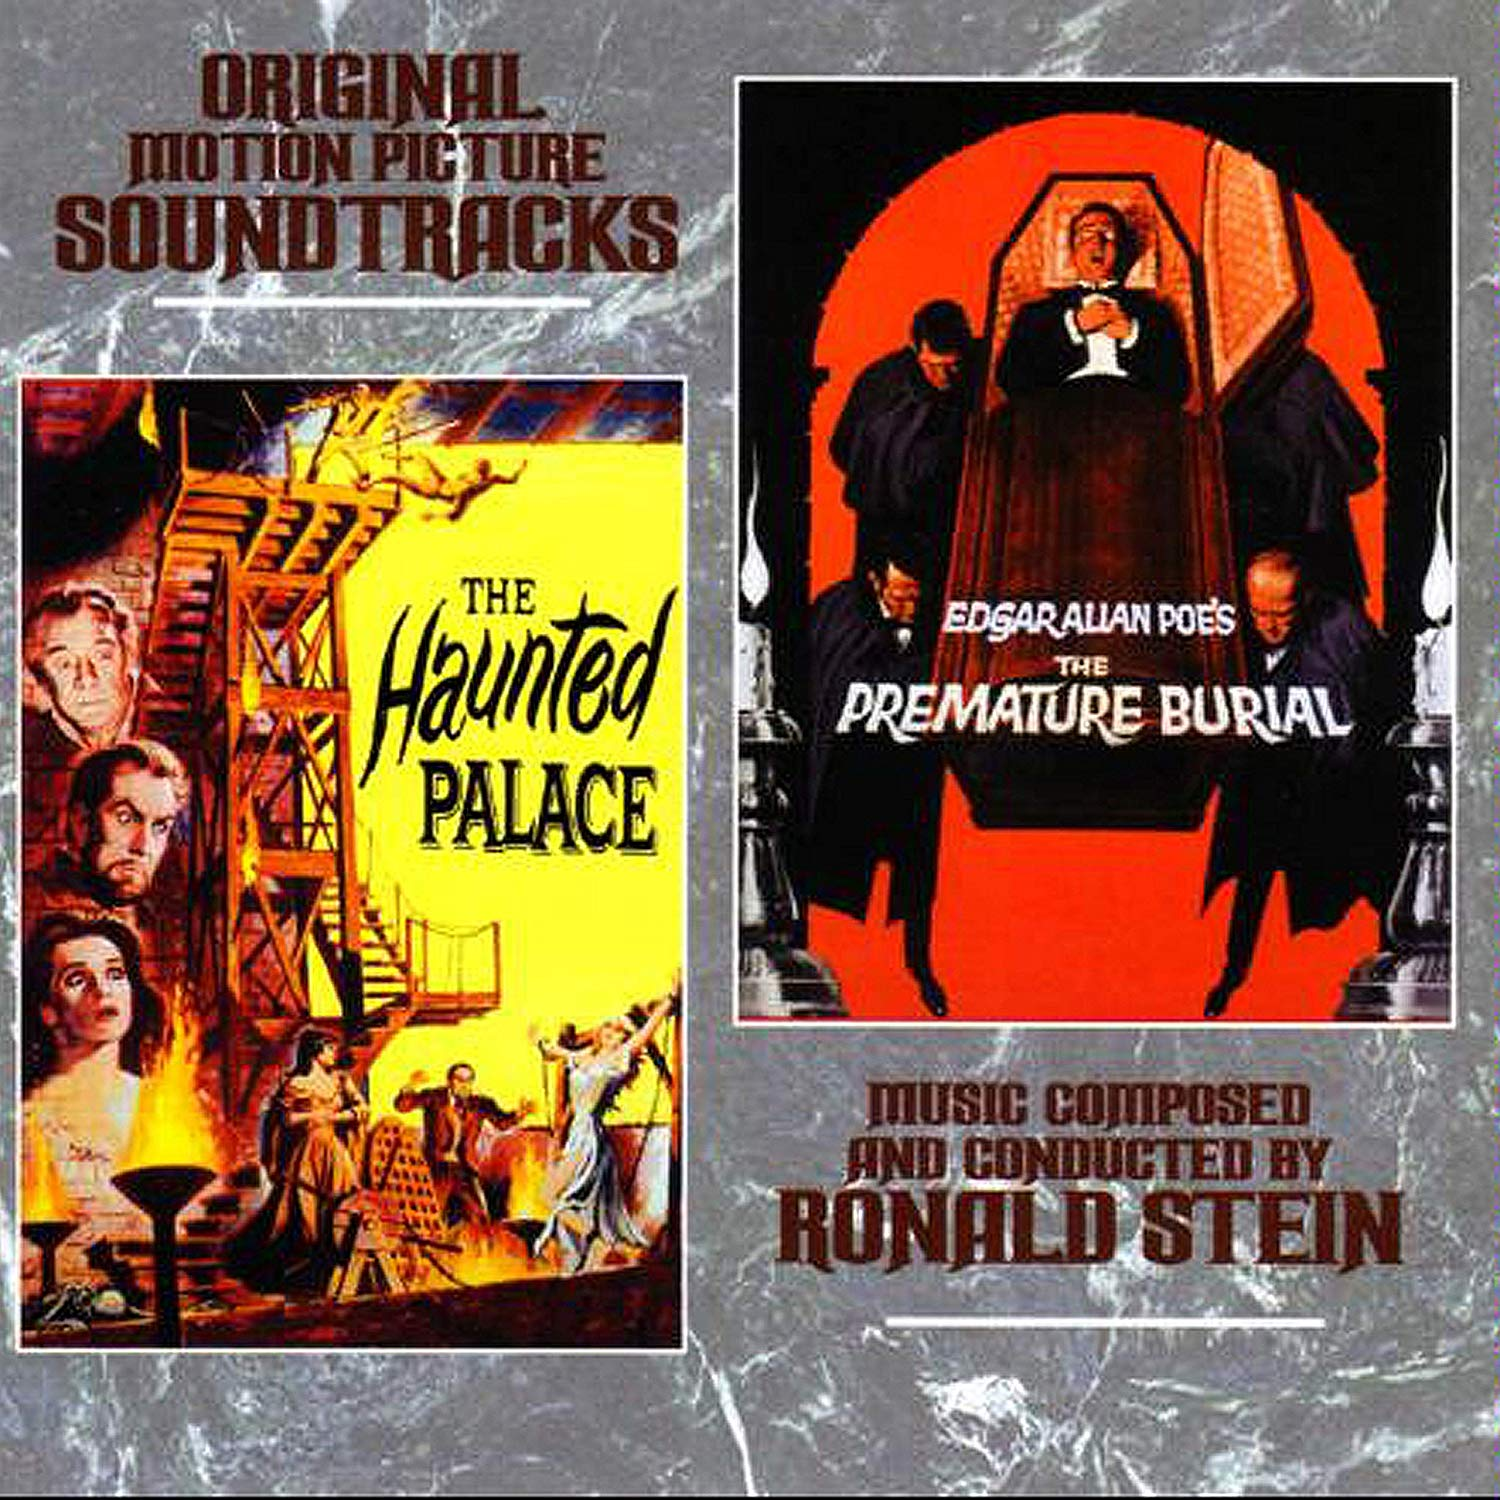 Haunted palace (The) - La città dei mostri (1963) / Premature burial - Sepolto vivo (1962)